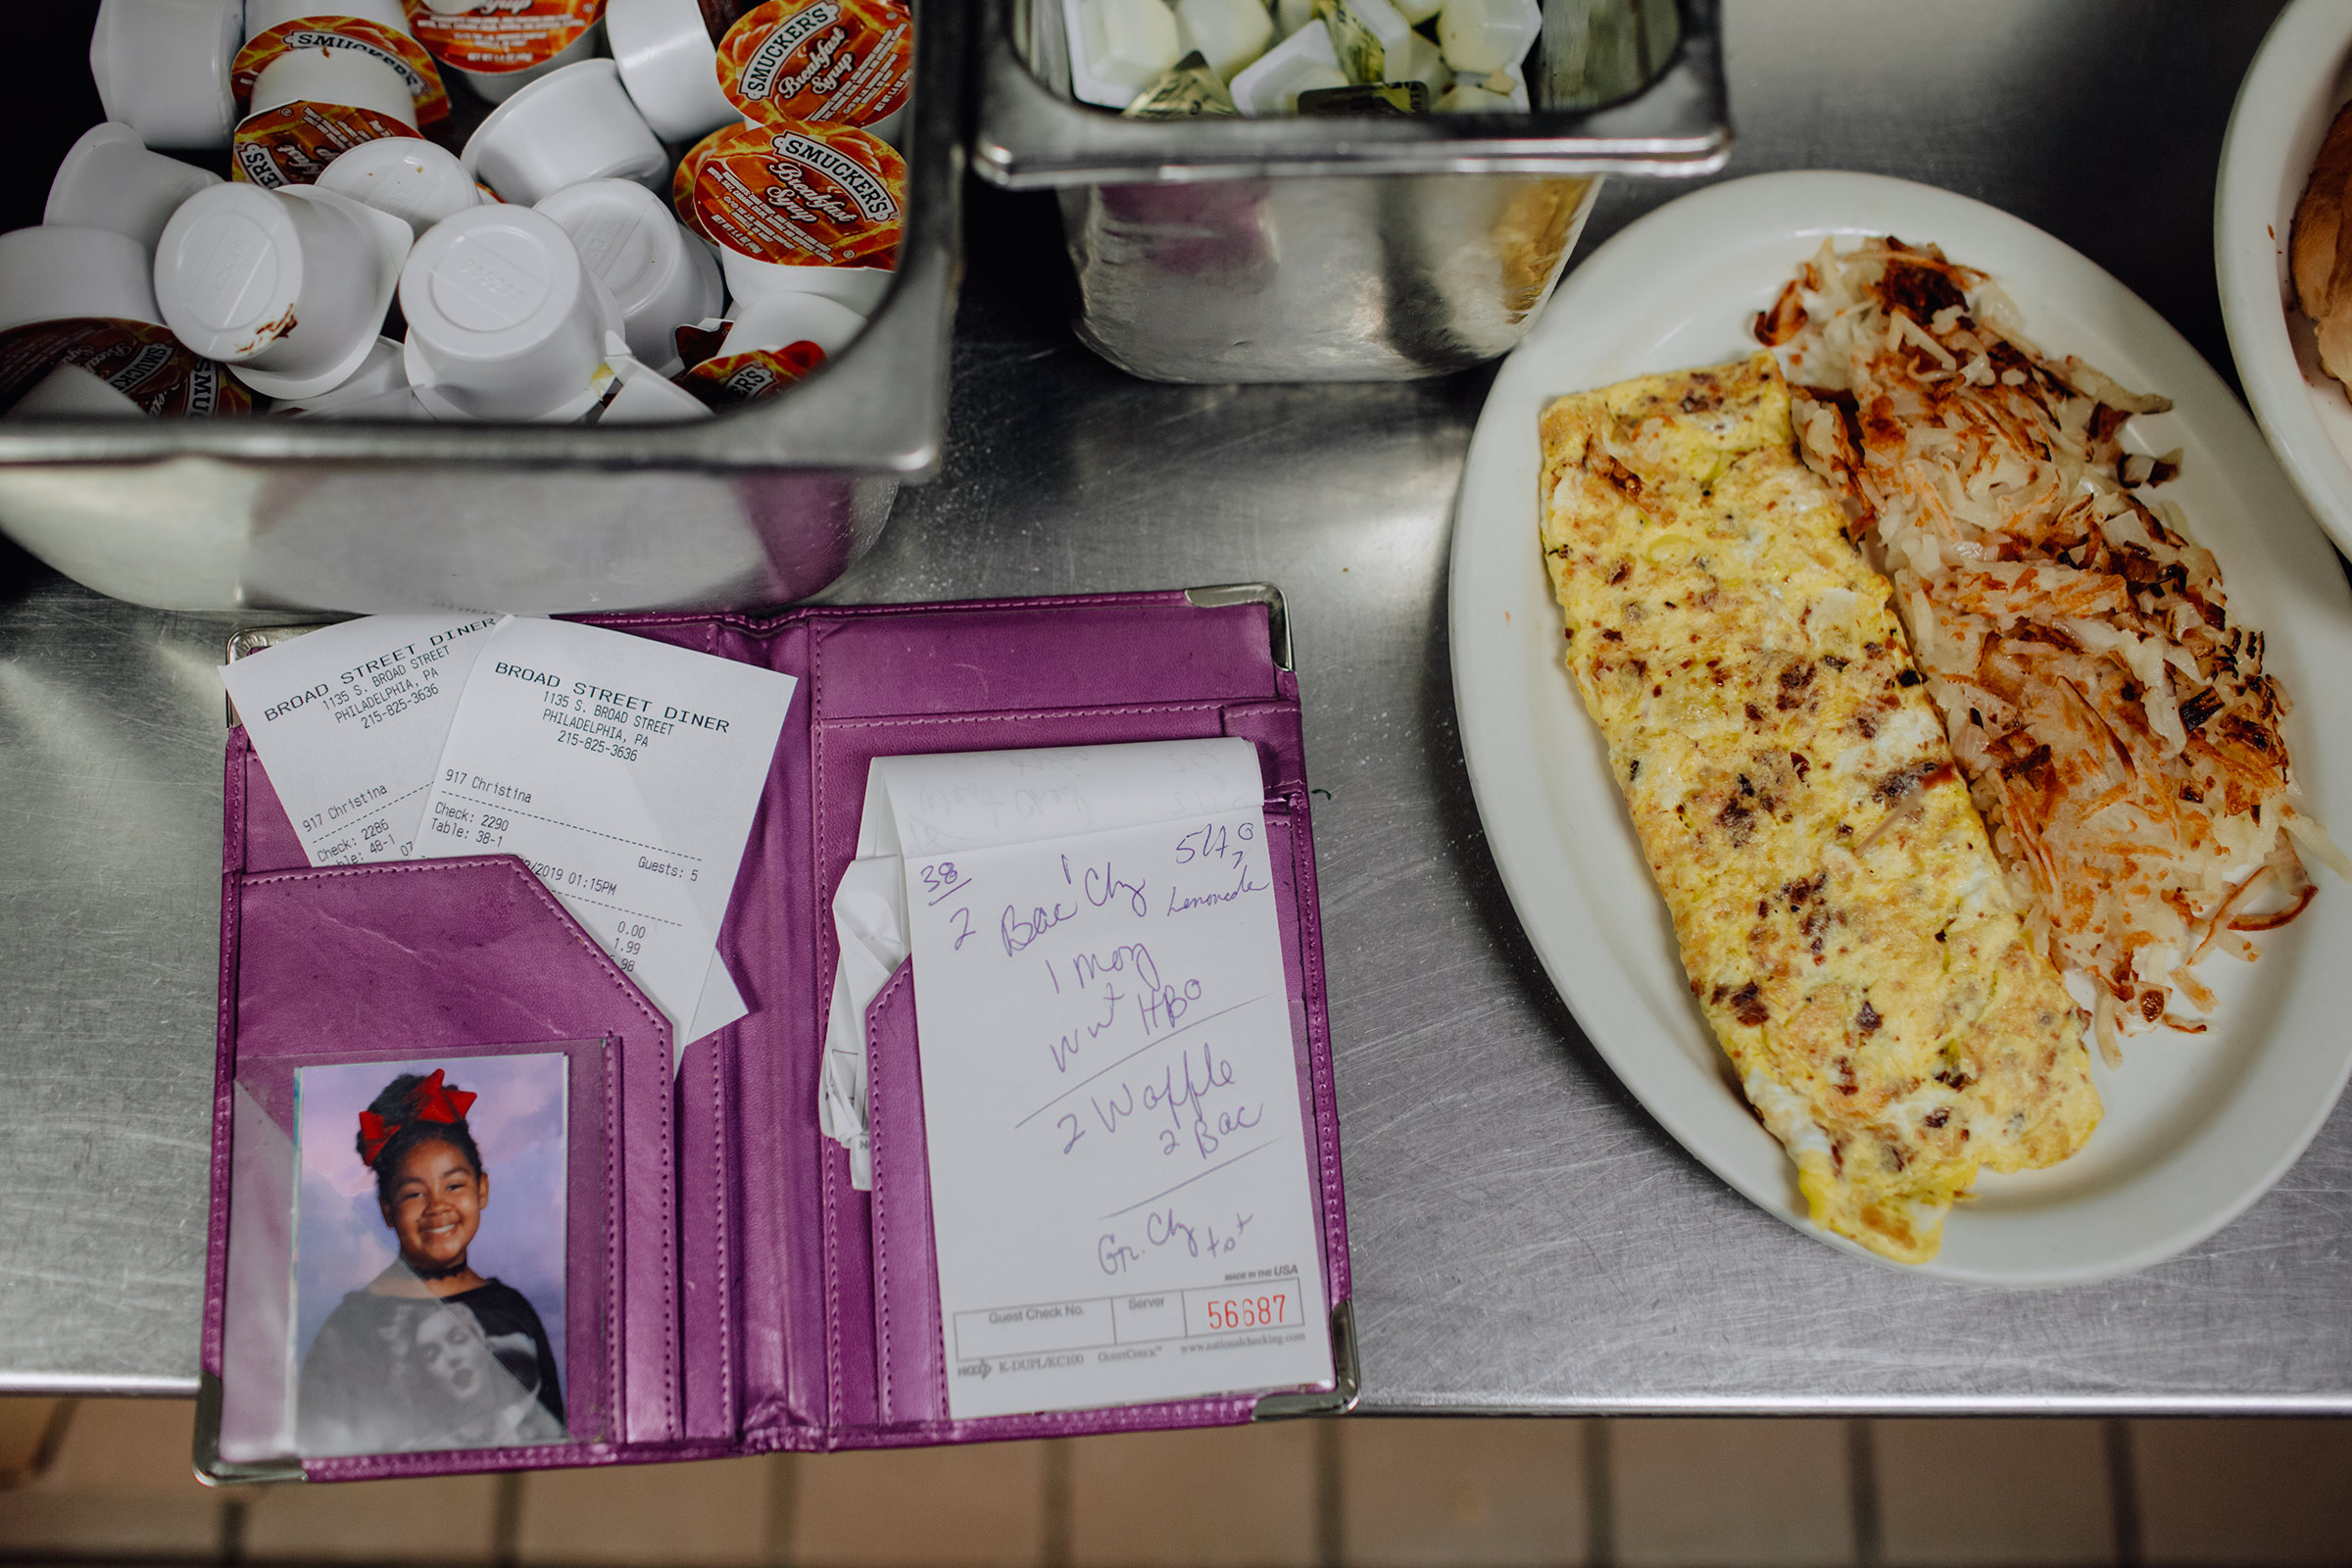 In the kitchen at the Broad Street Diner in Philadelphia, waitress Christina Munce keeps her daughter's photo next to her pad for taking orders.